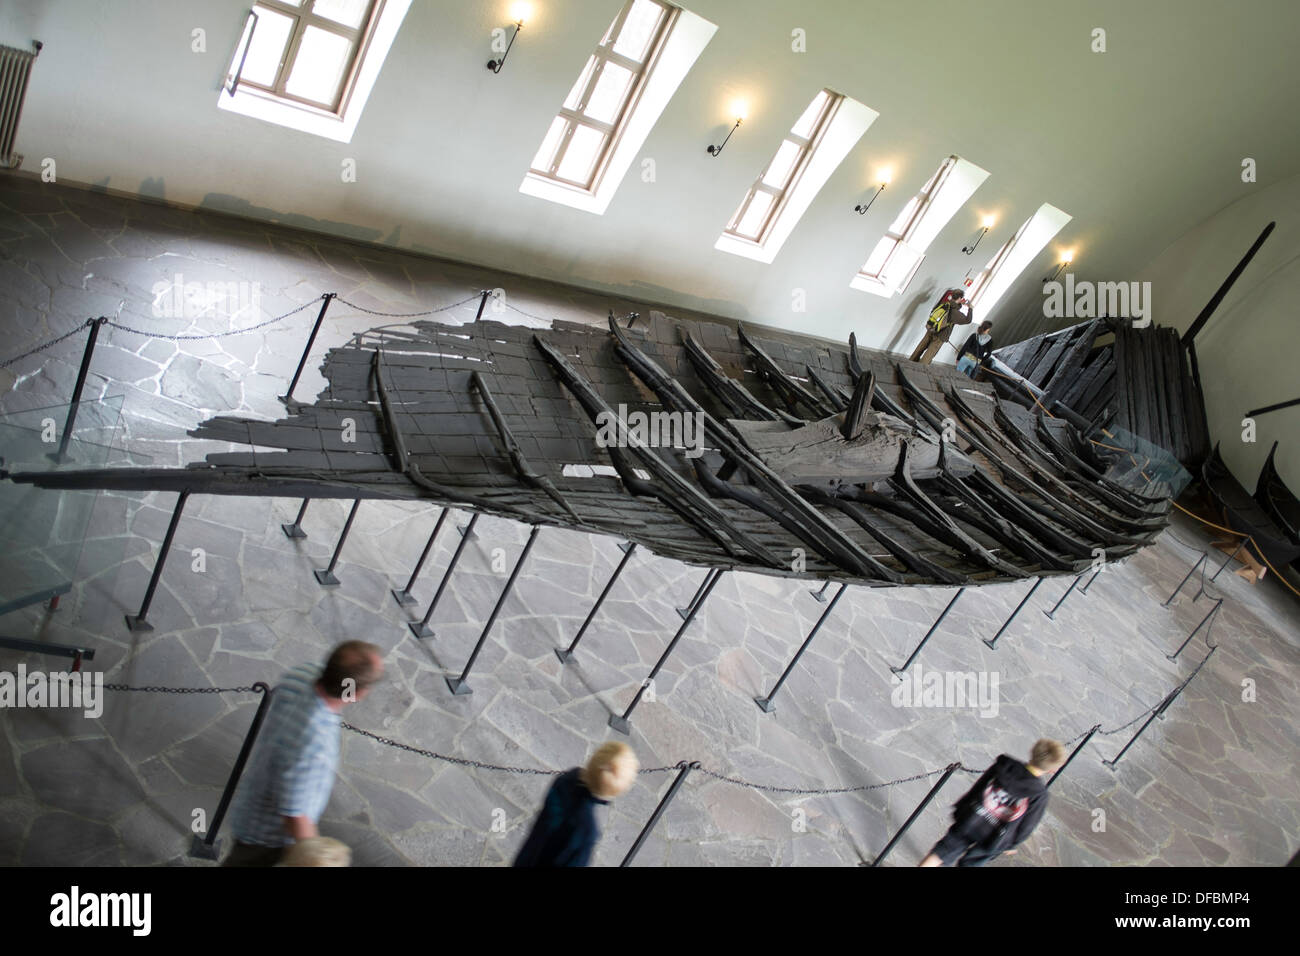 The Tune ship in the Viking Museum, Oslo Norway - Stock Image